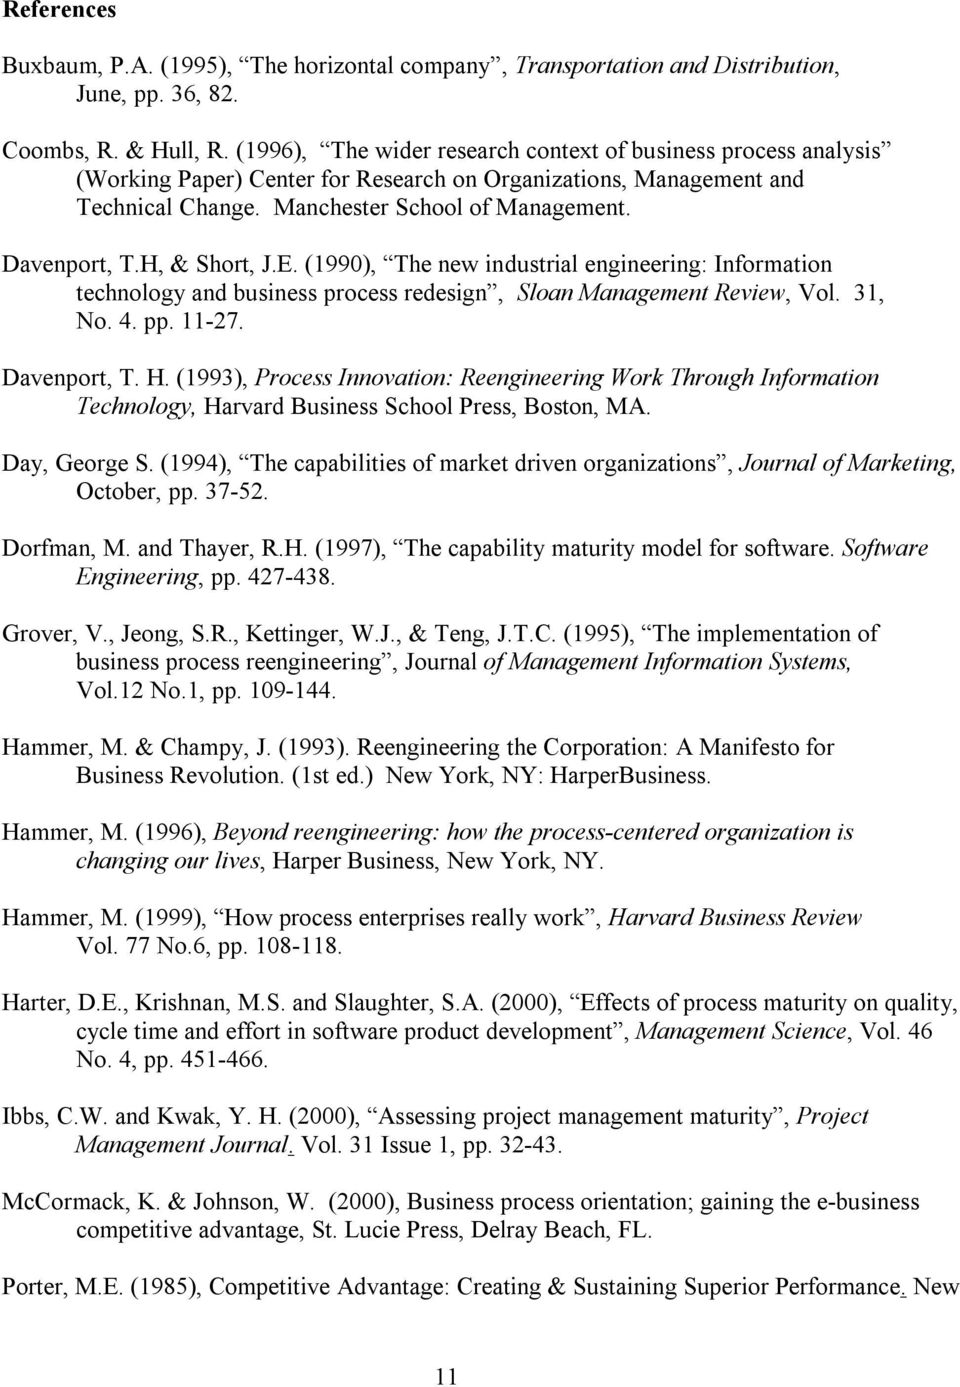 H, & Short, J.E. (1990), The new industrial engineering: Information technology and business process redesign, Sloan Management Review, Vol. 31, No. 4. pp. 11-27. Davenport, T. H.